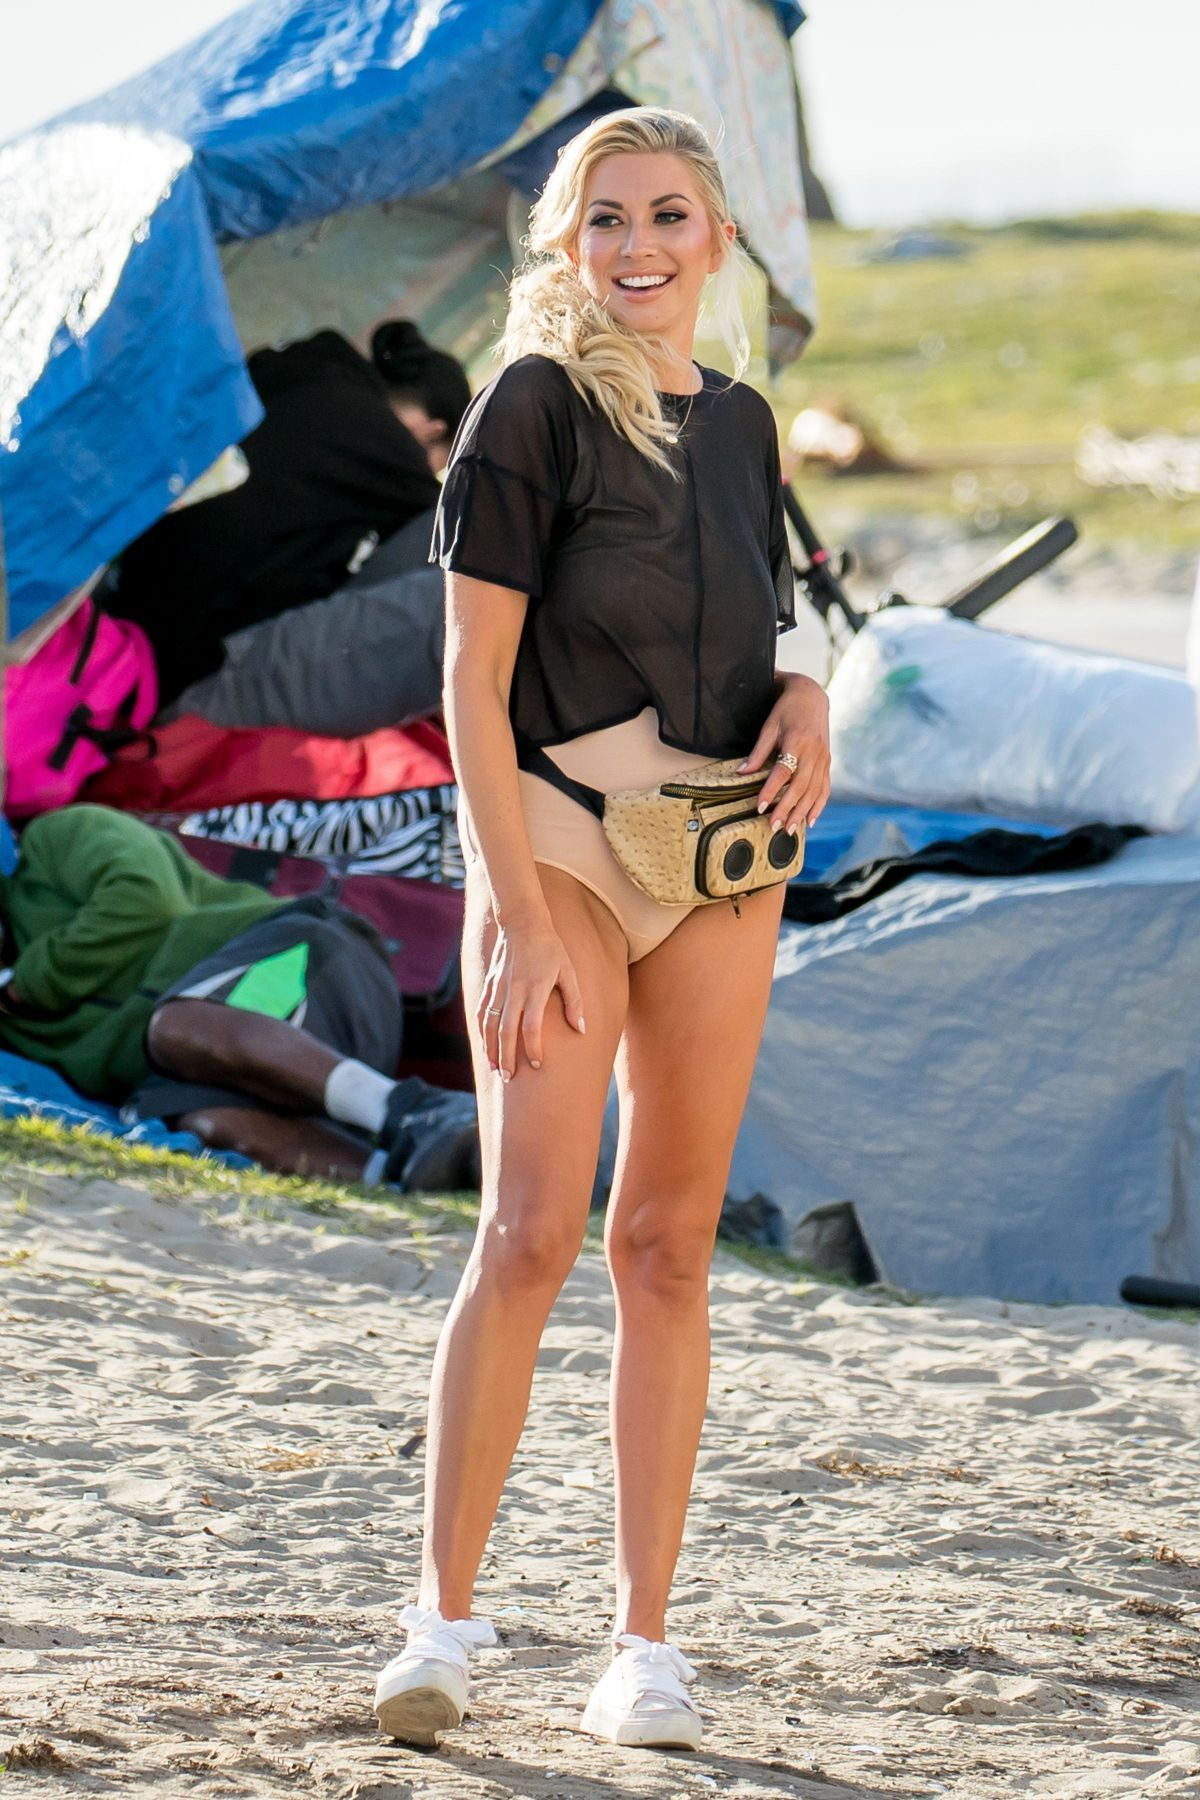 Stassi Schroeder On the Set of a Photoshoot in Venice Beach